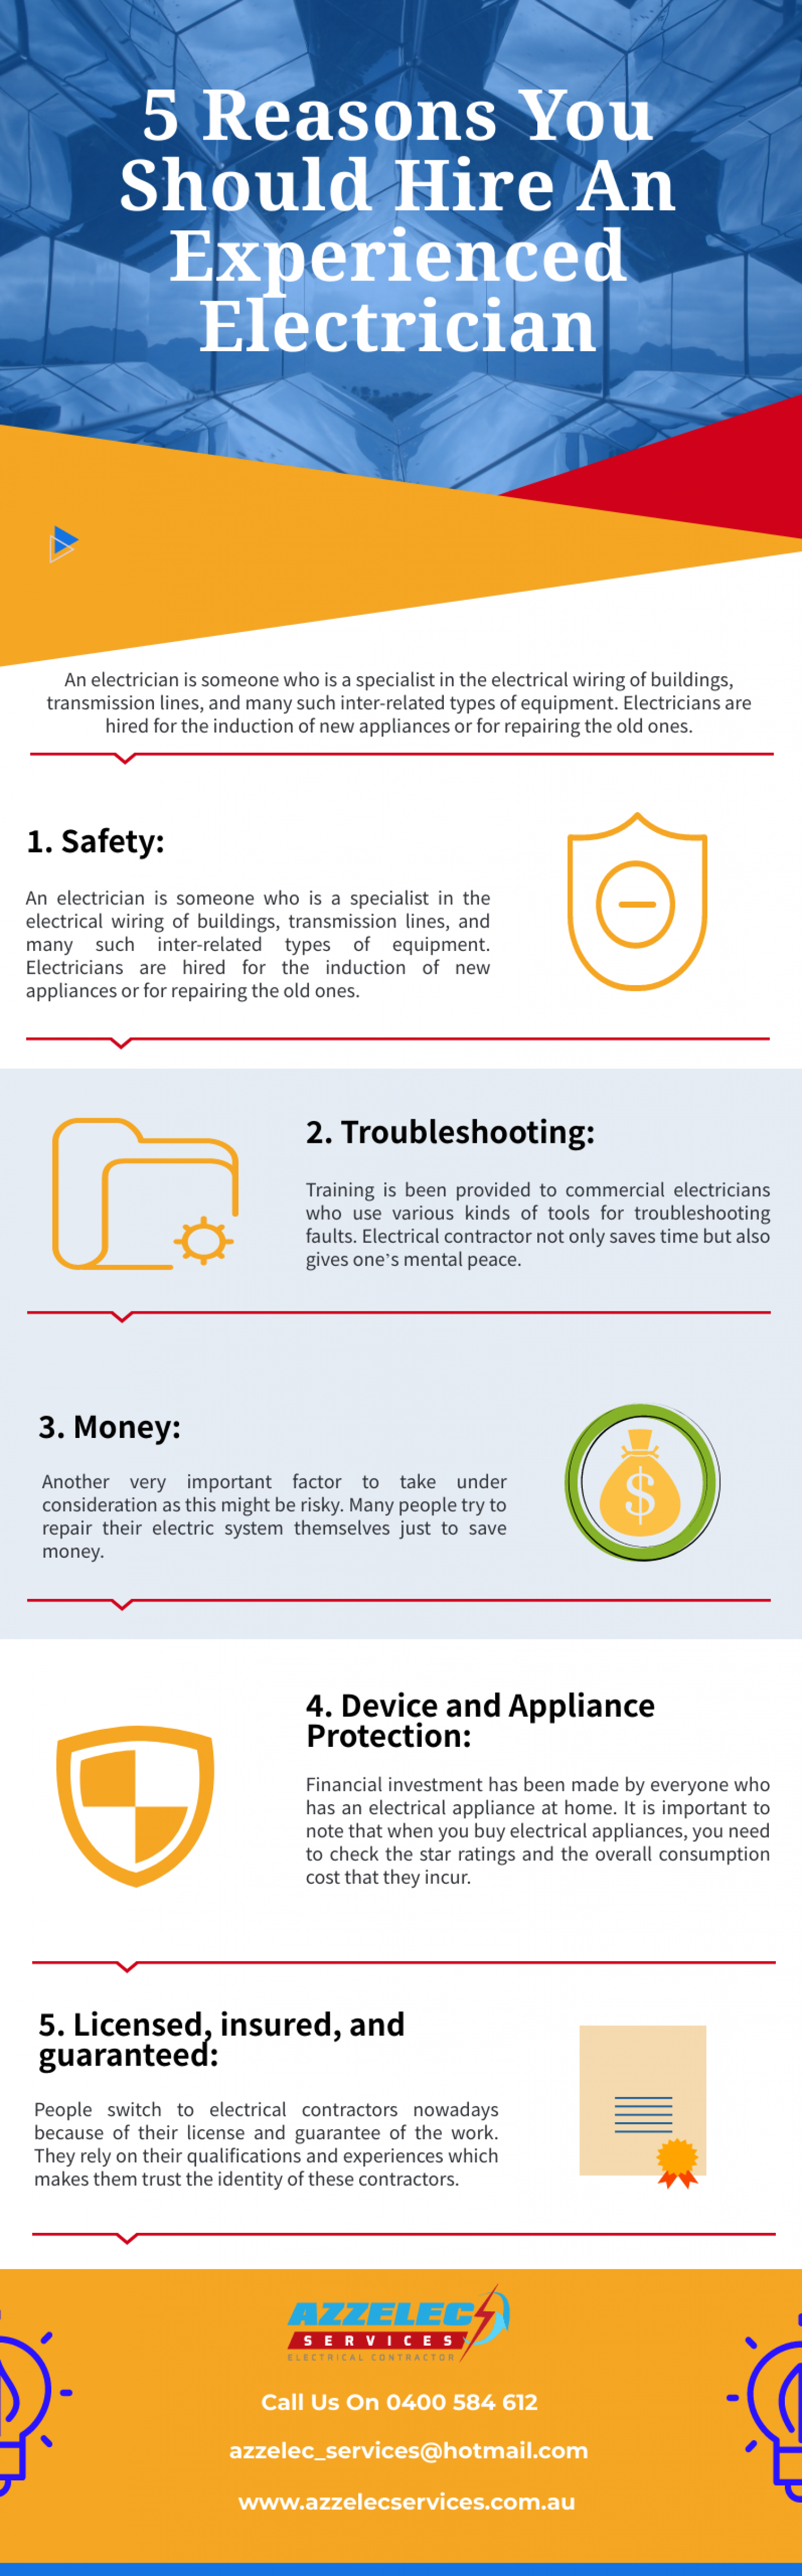 5 Reasons You Should Hire An Experienced Electrician Infographic